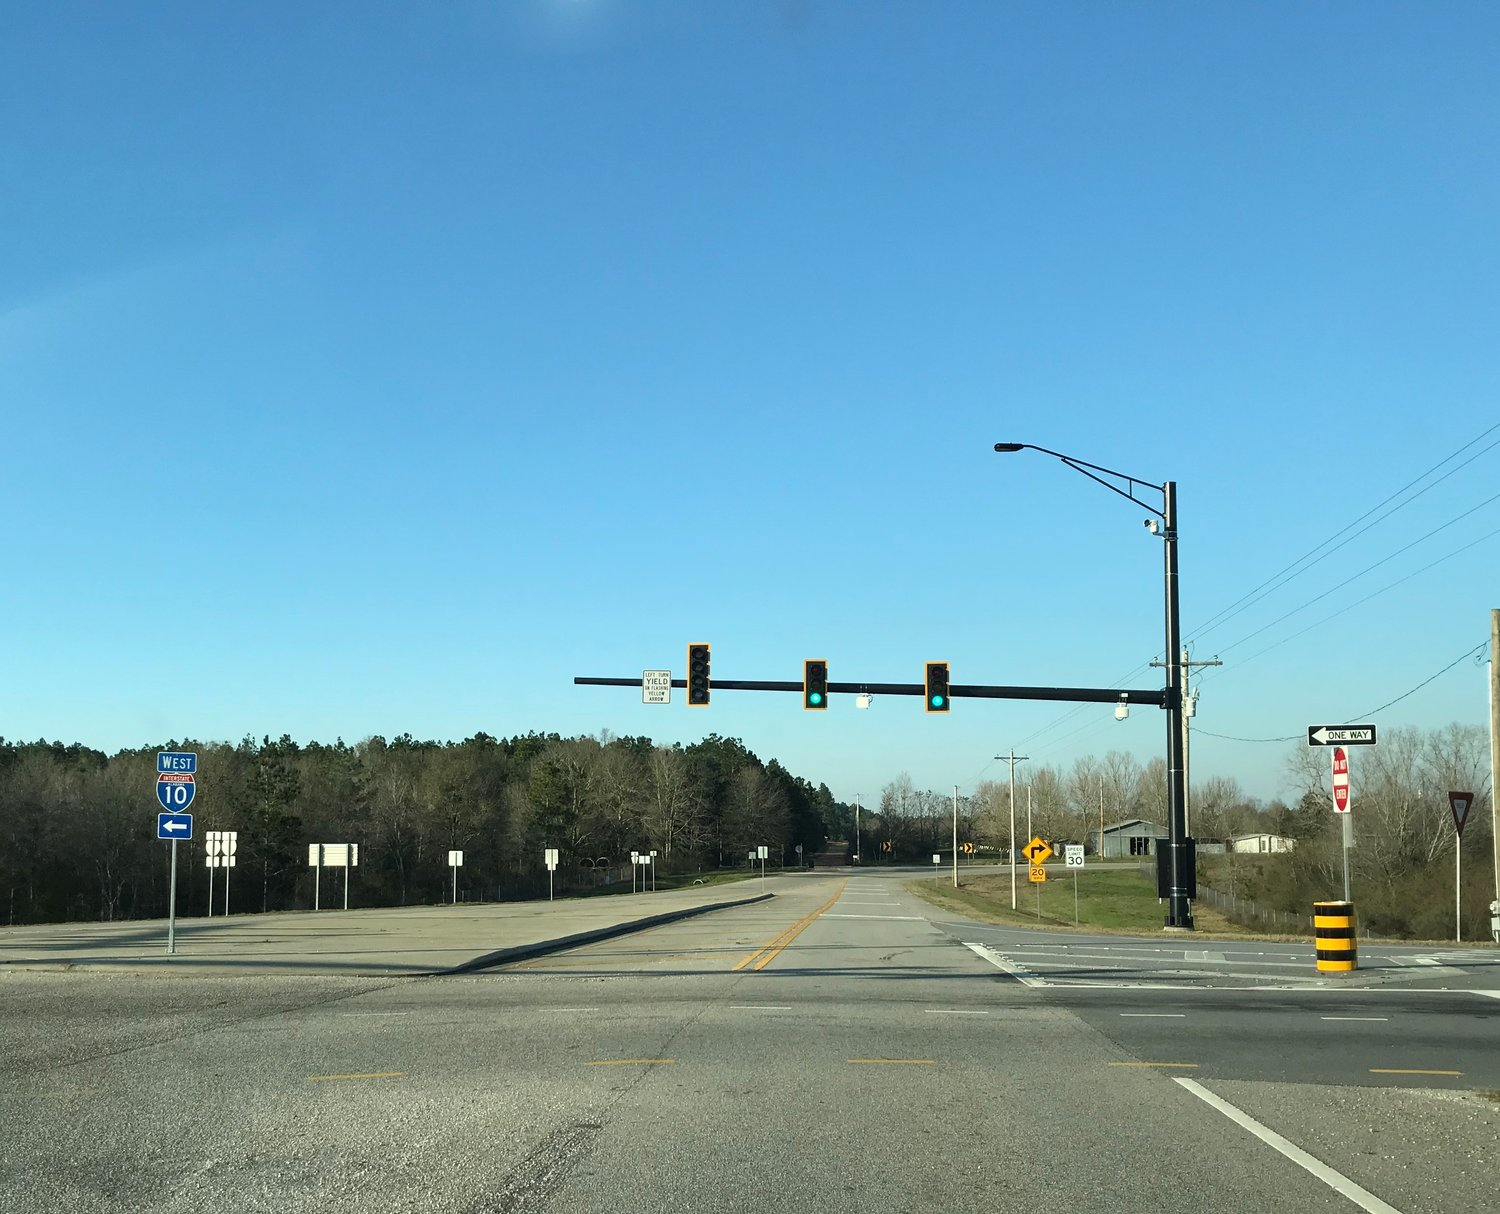 Baldwin County voters will decide in November whether to approve an amendment allowing the county to create a toll authority to finance the extension of the Baldwin Beach Express north from Interstate 10 to Interstate 65.